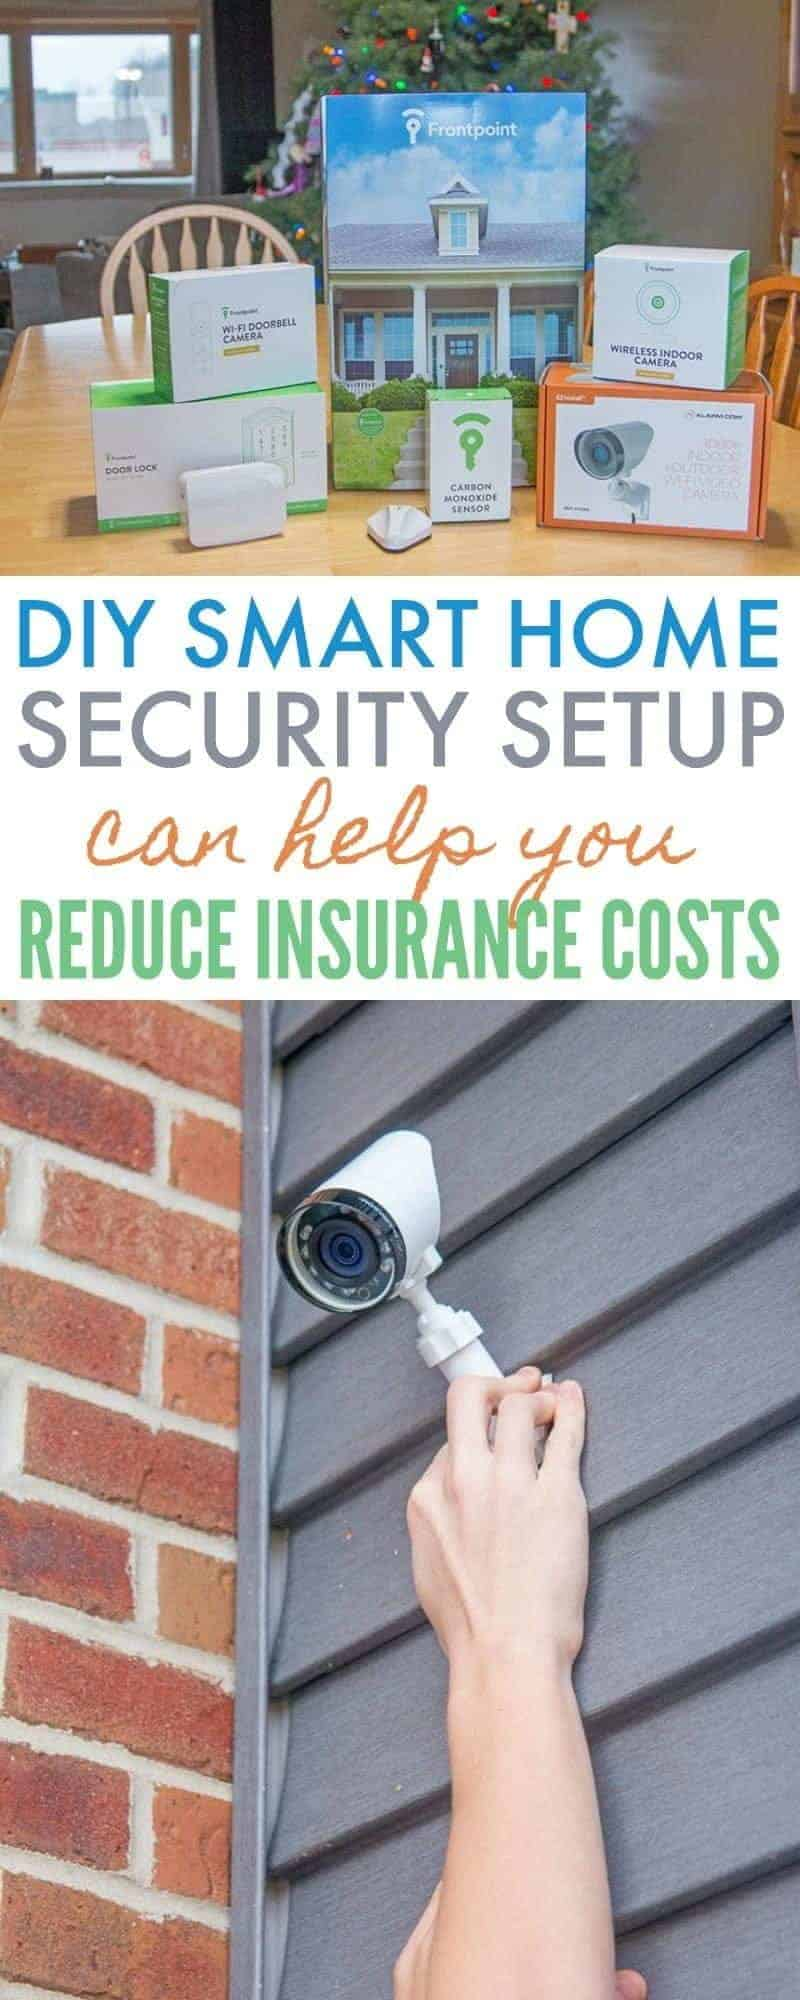 Frontpoint Security Setup - Protect Your Home with American Family Insurance and a smart home security system. Peace of mind and discounts on insurance! DIY setup. #smarthome #homesecurity #technology